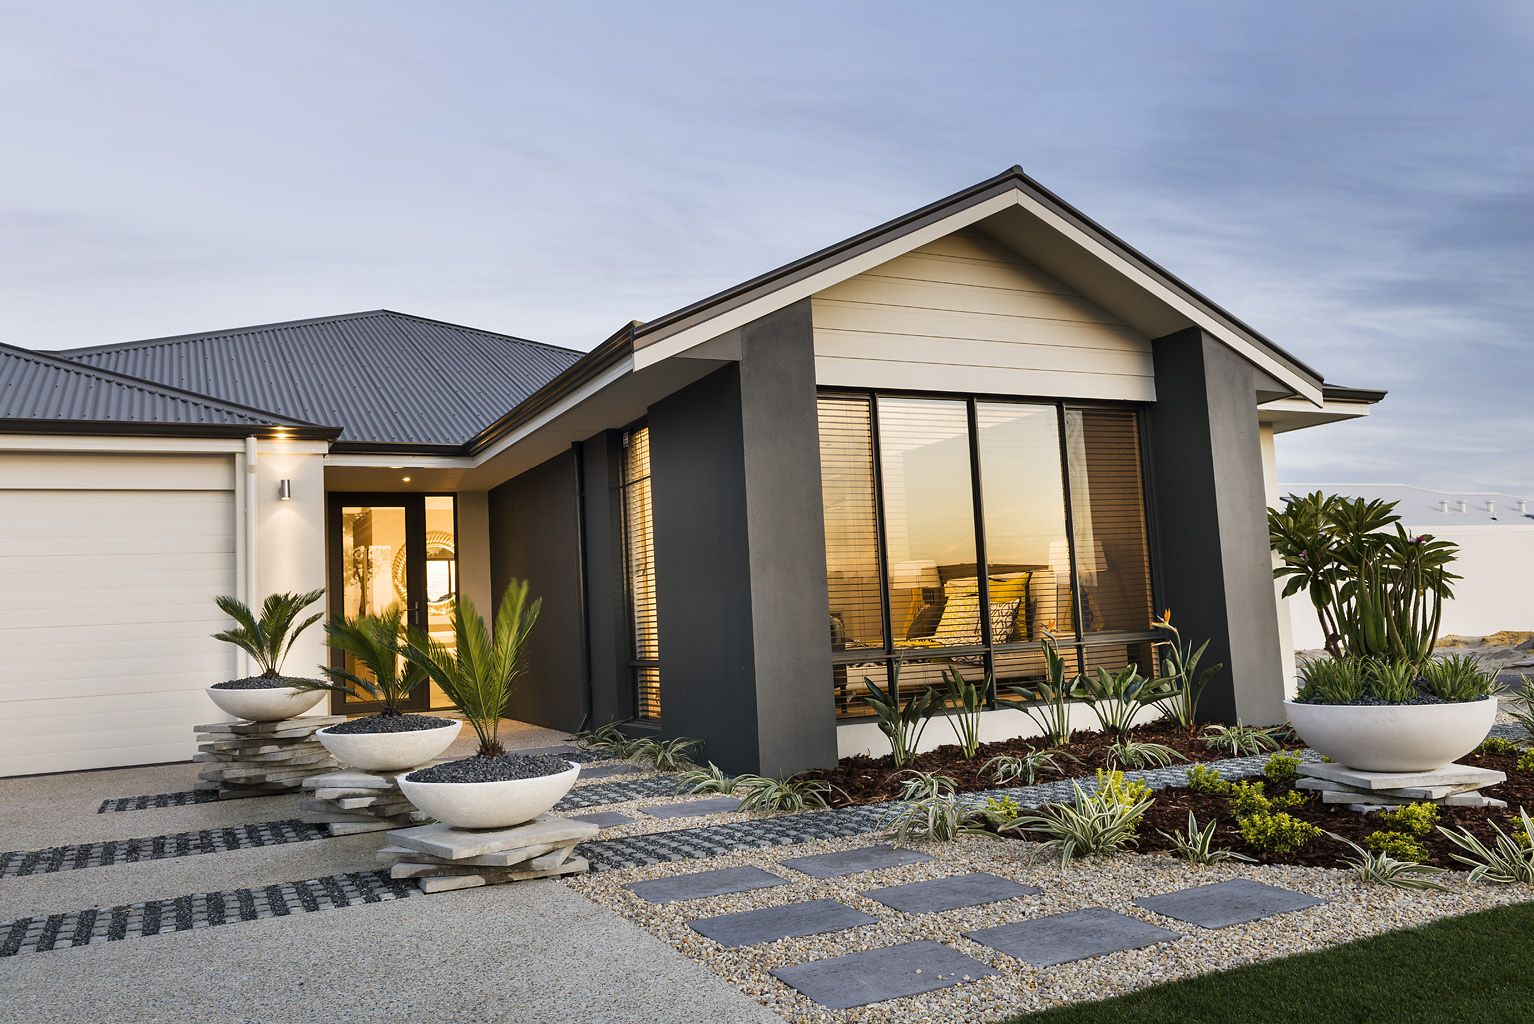 redford display home opens this weekend celebration homes - Modern Display Homes